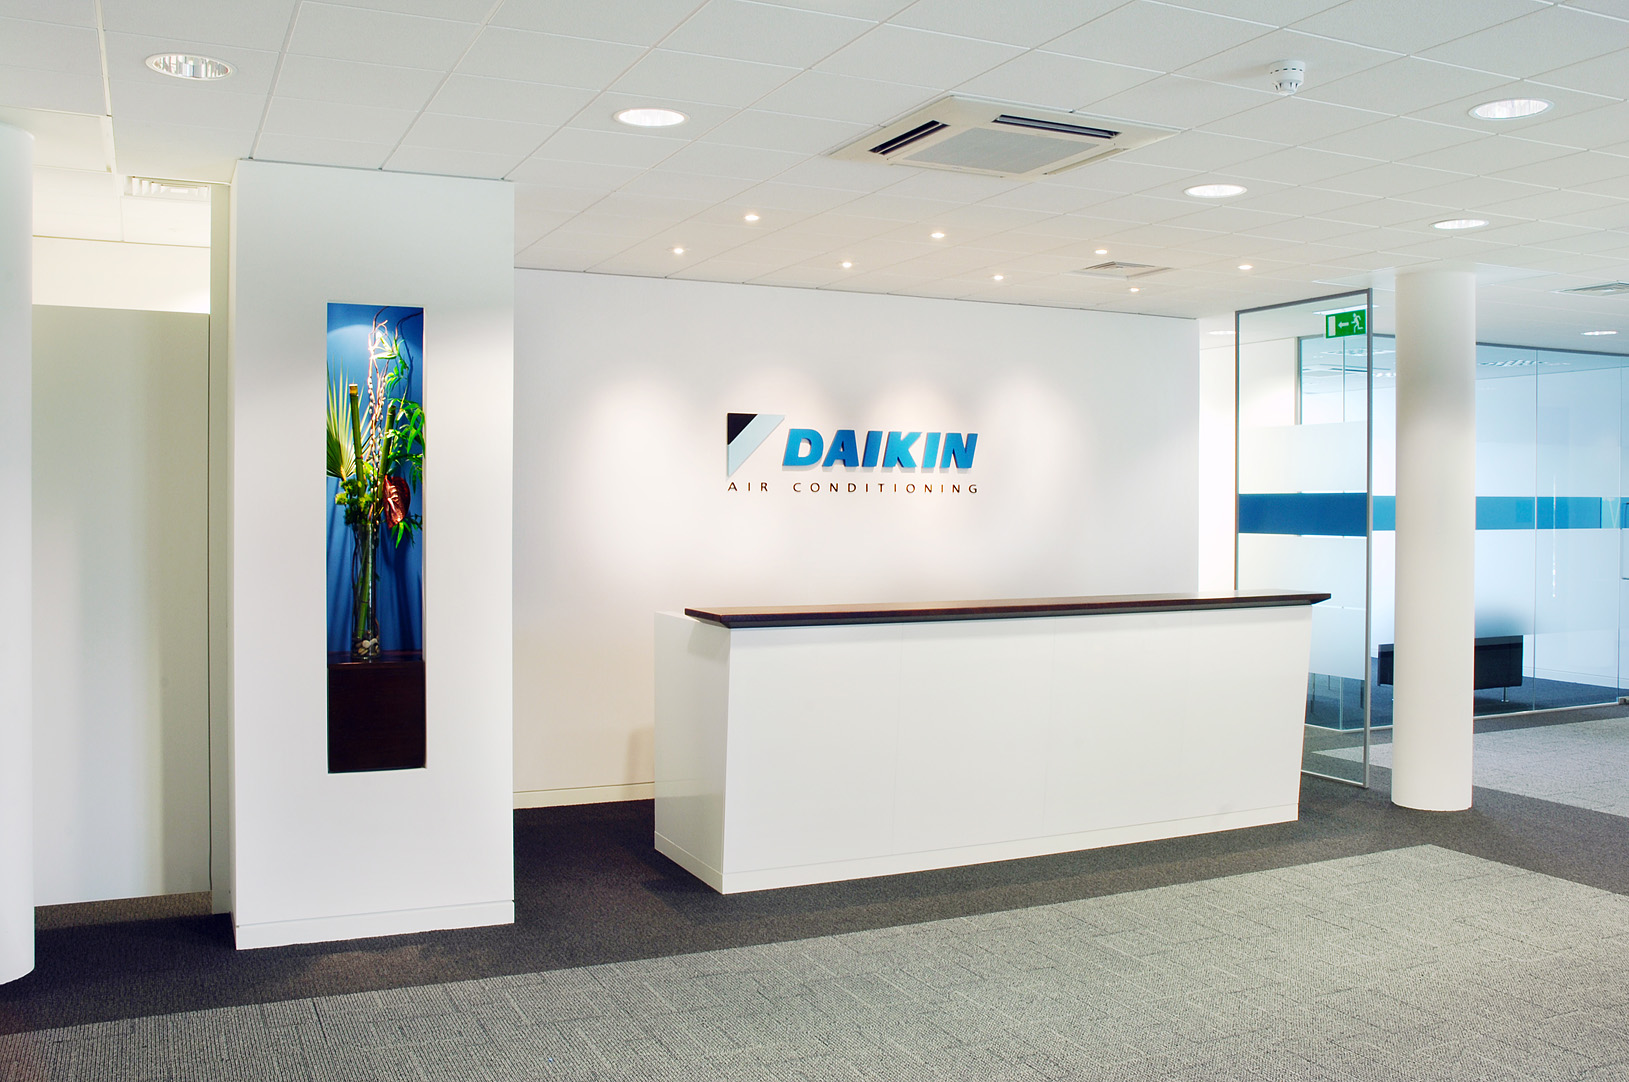 Diakin reception